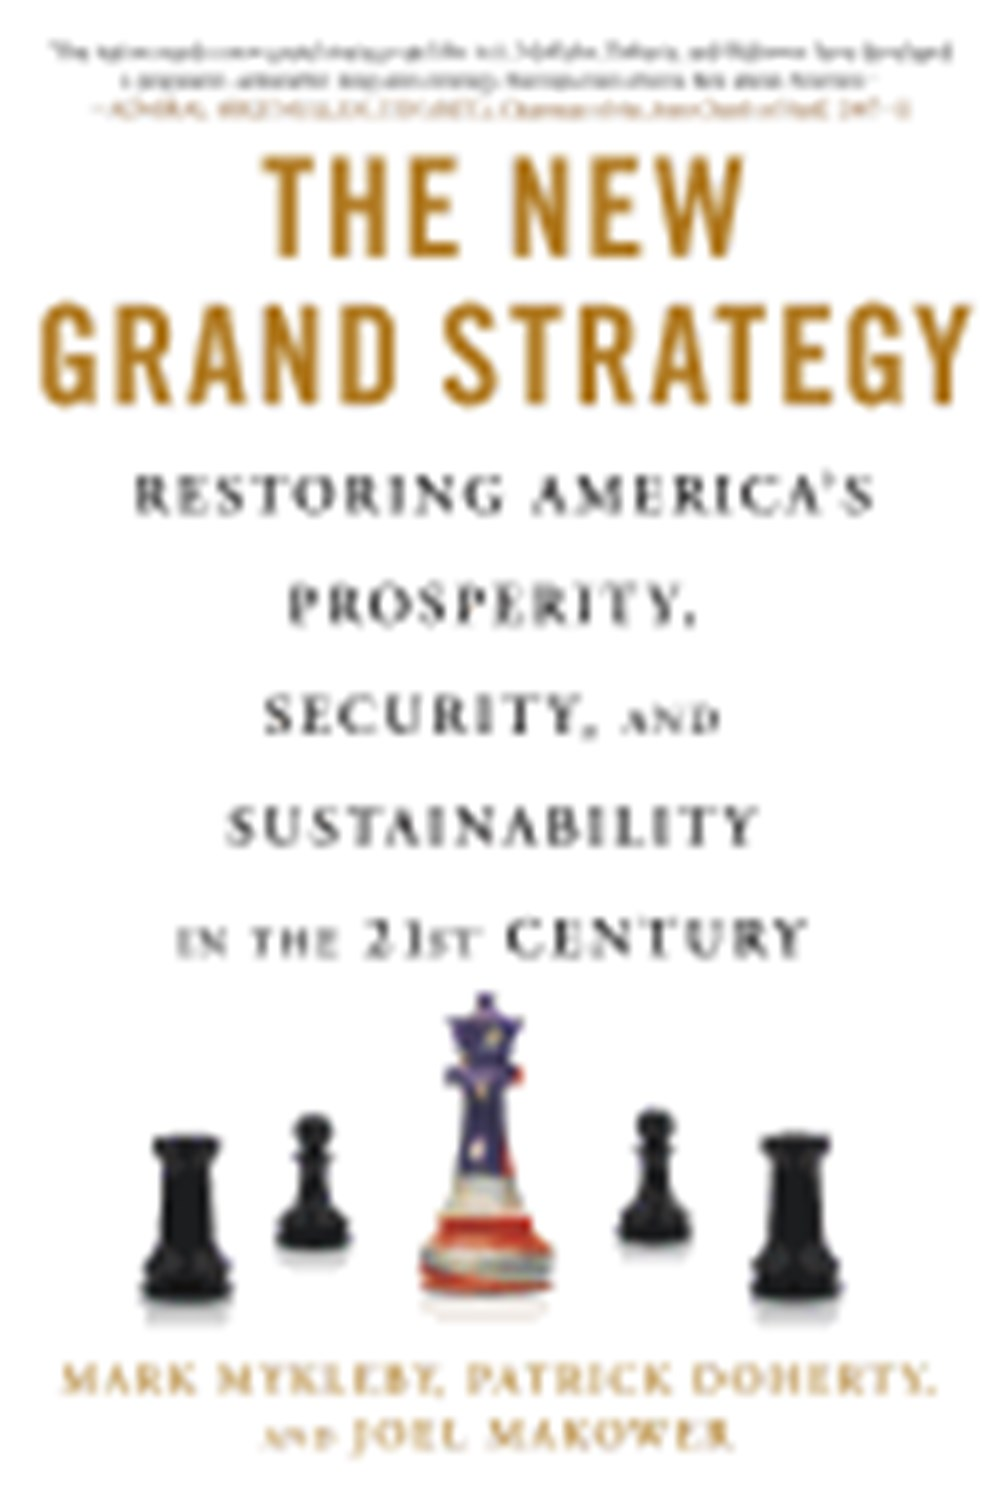 New Grand Strategy Restoring America's Prosperity, Security, and Sustainability in the 21st Century